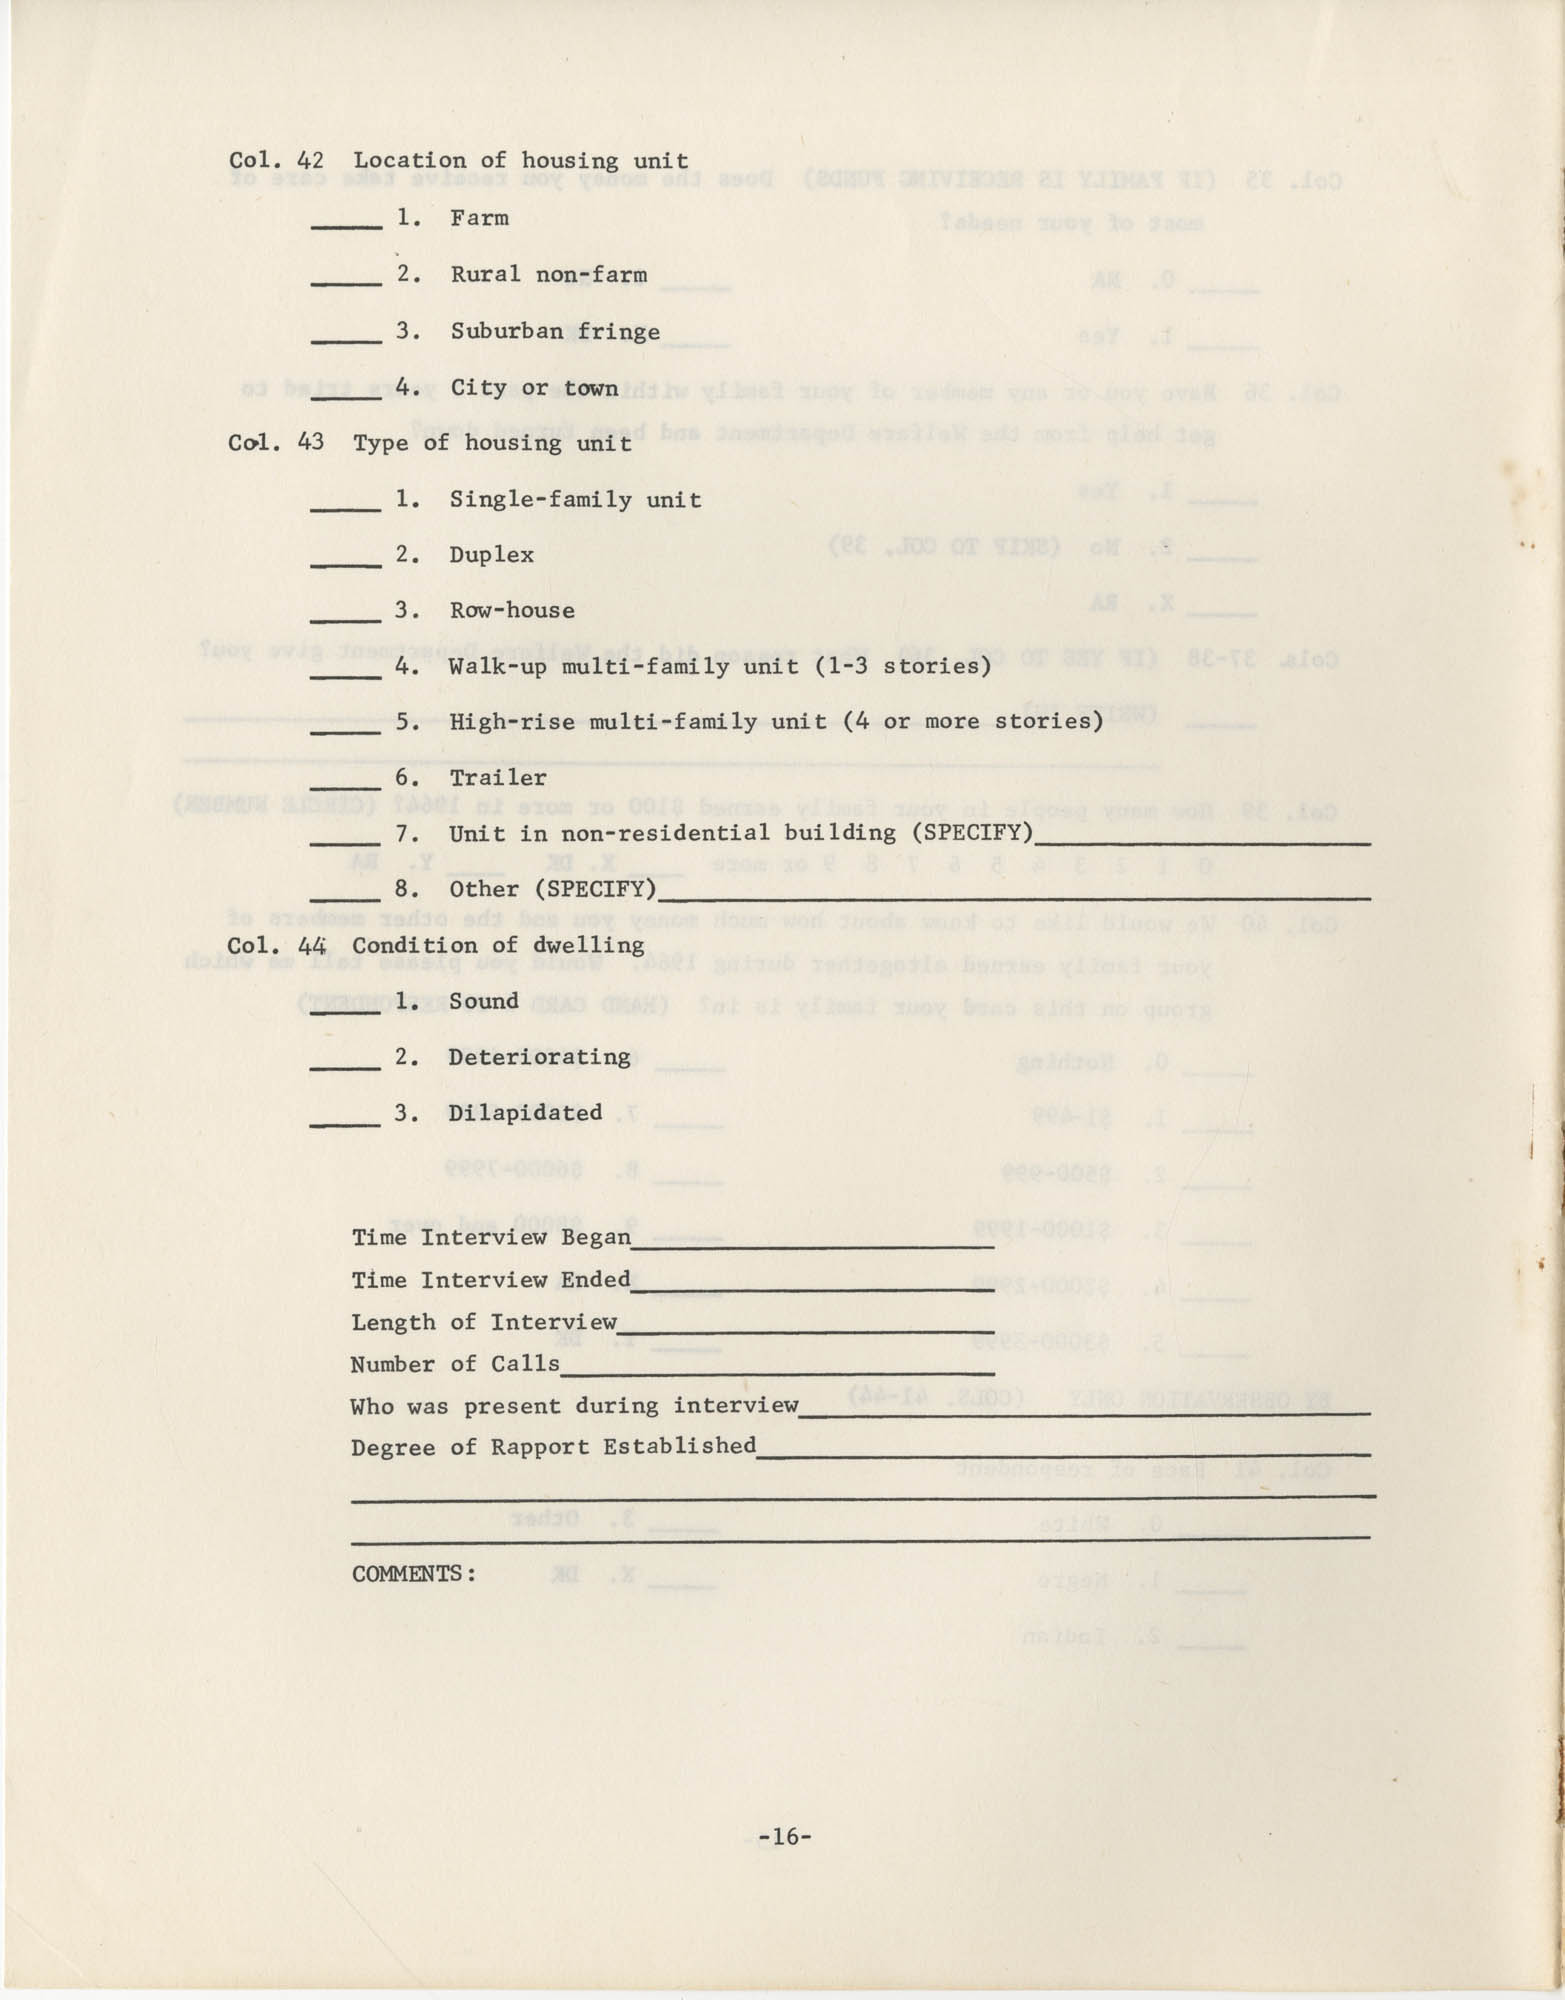 Household Questionnaire, Page 16